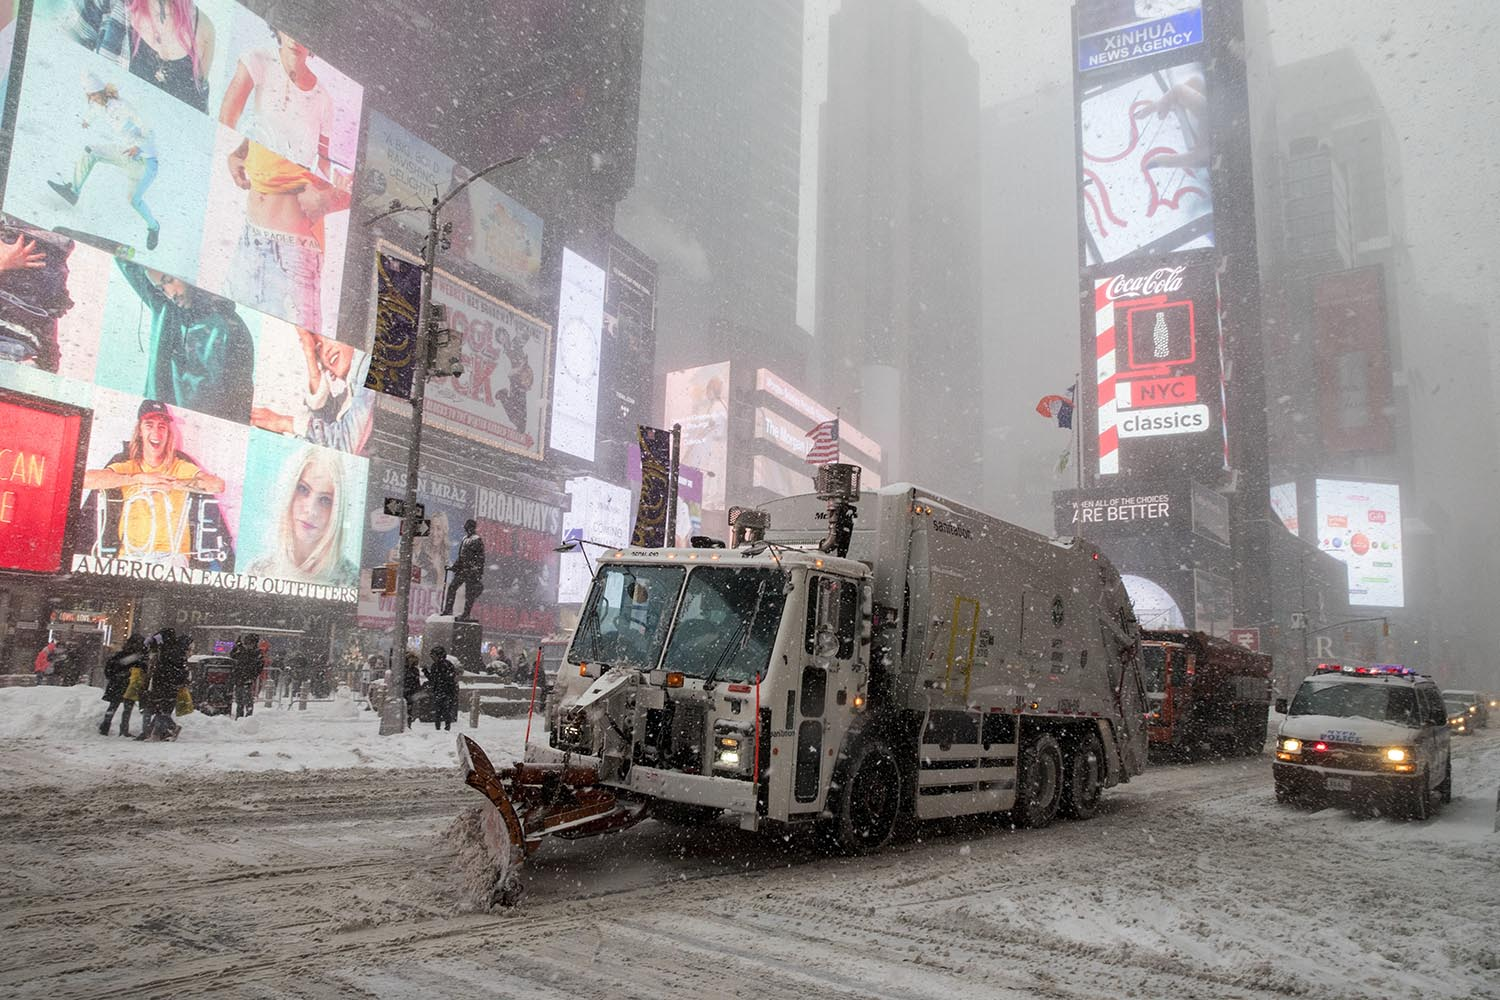 <div class='meta'><div class='origin-logo' data-origin='AP'></div><span class='caption-text' data-credit='AP Photo/Mary Altaffer'>A snow plow clears snow off Broadway in New York's Times Square, Thursday, Jan. 4, 2018.</span></div>